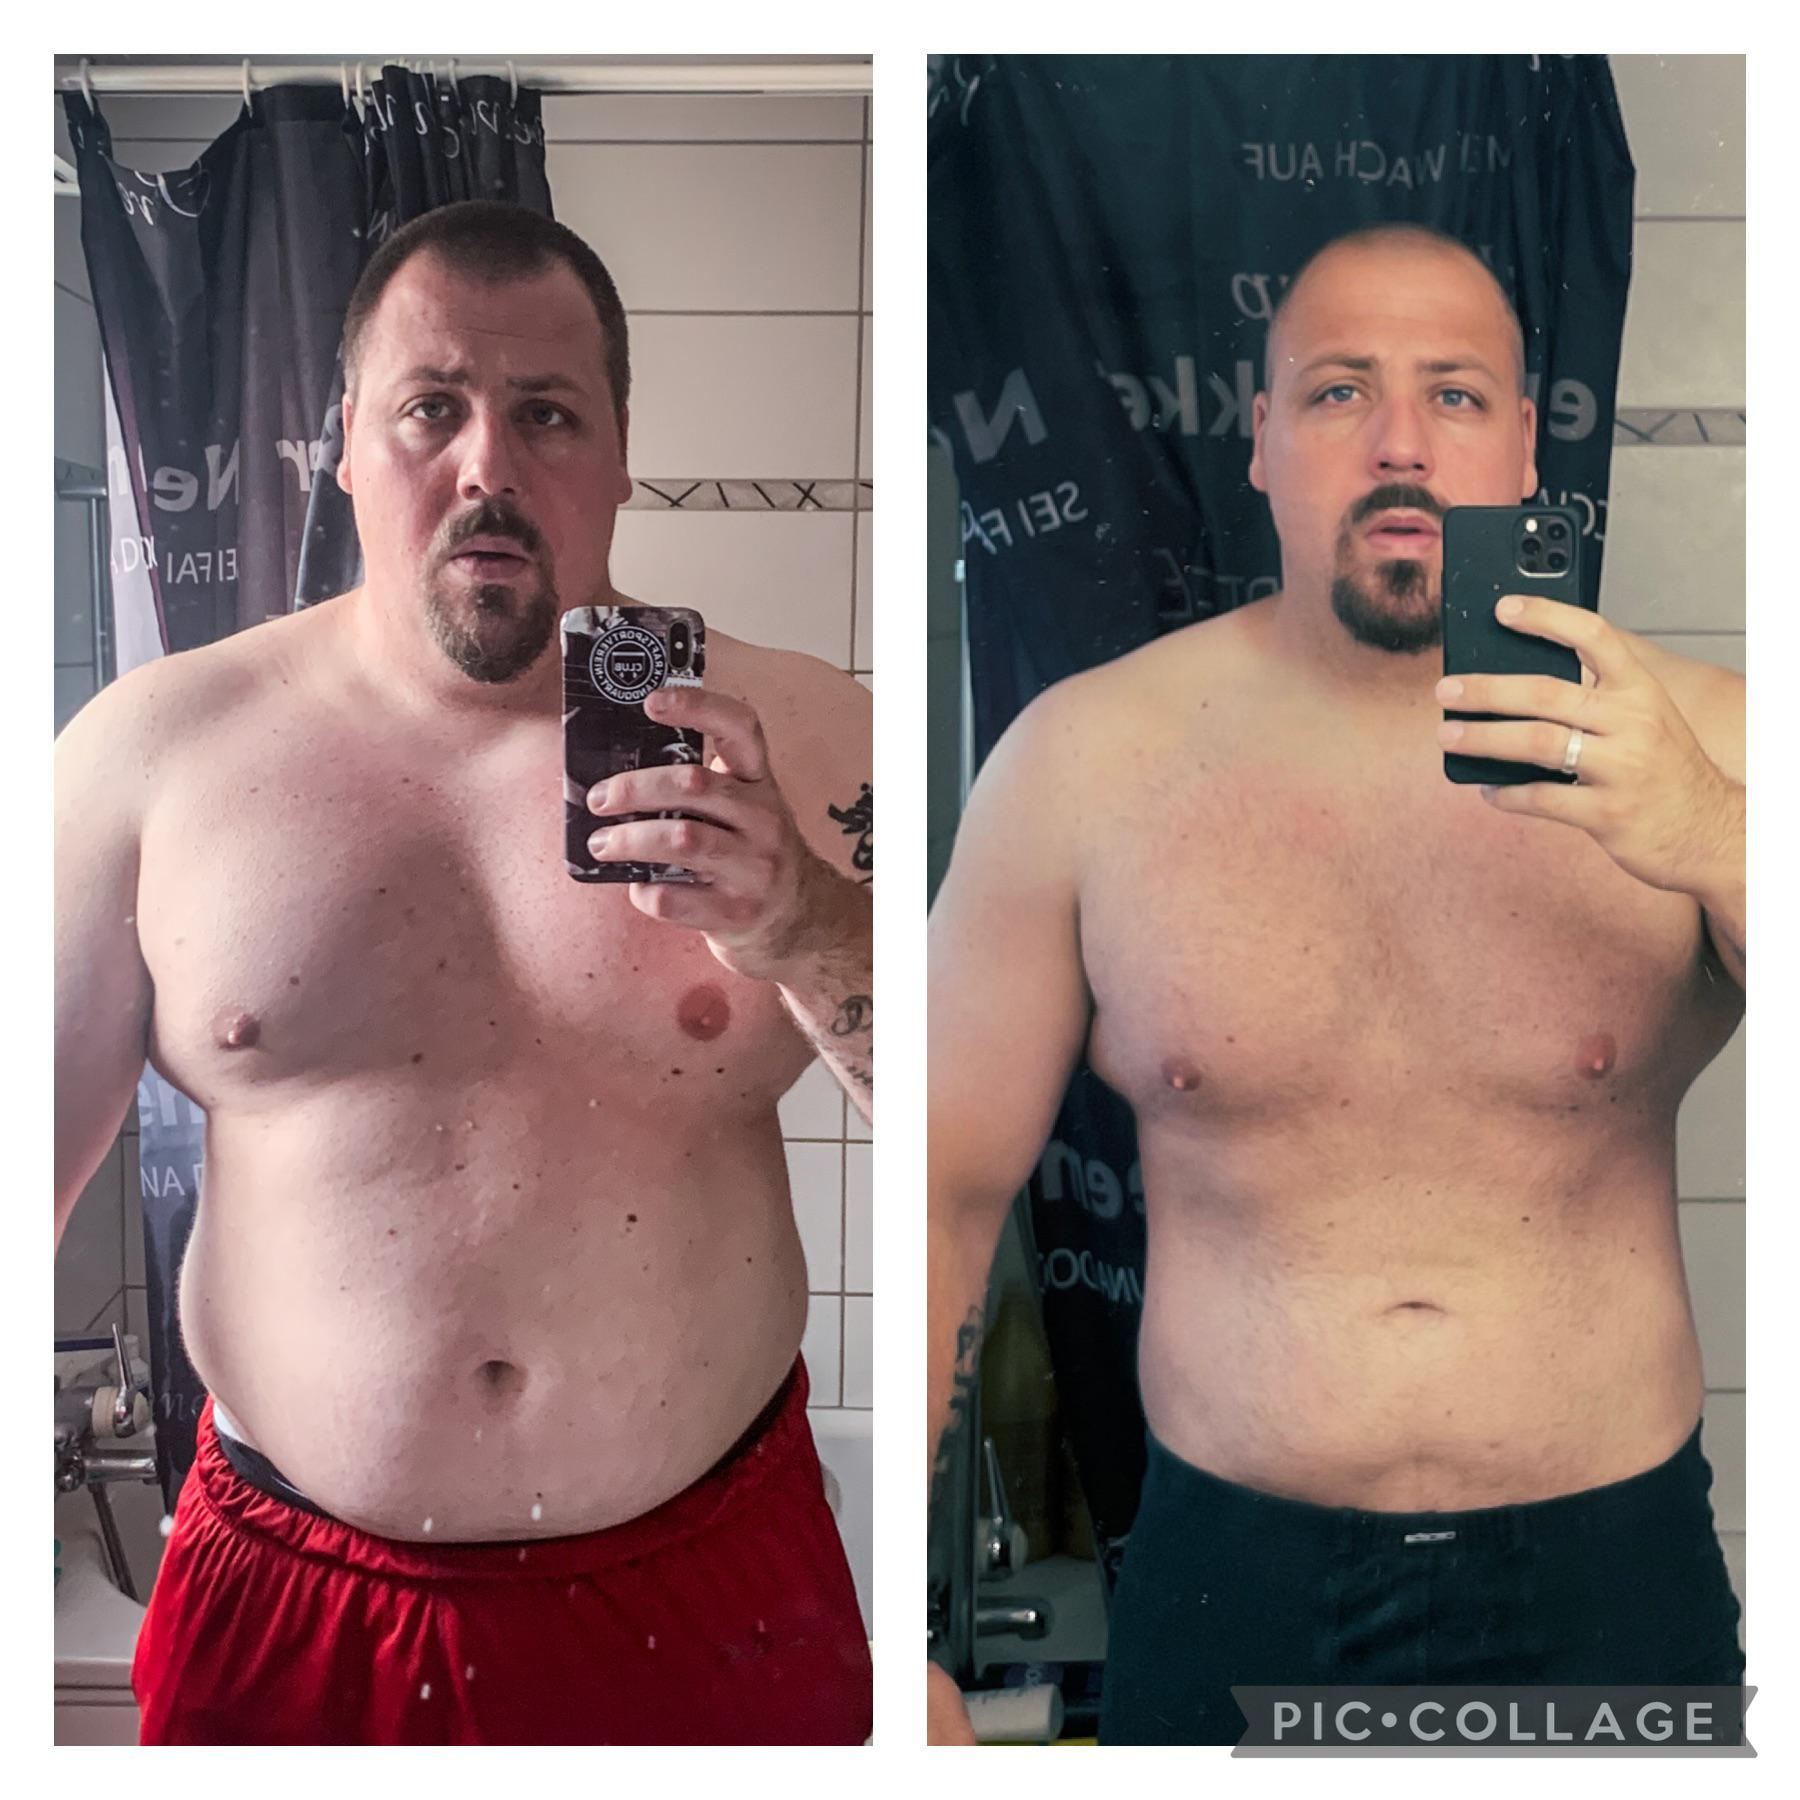 6 feet 1 Male Before and After 70 lbs Weight Loss 332 lbs to 262 lbs